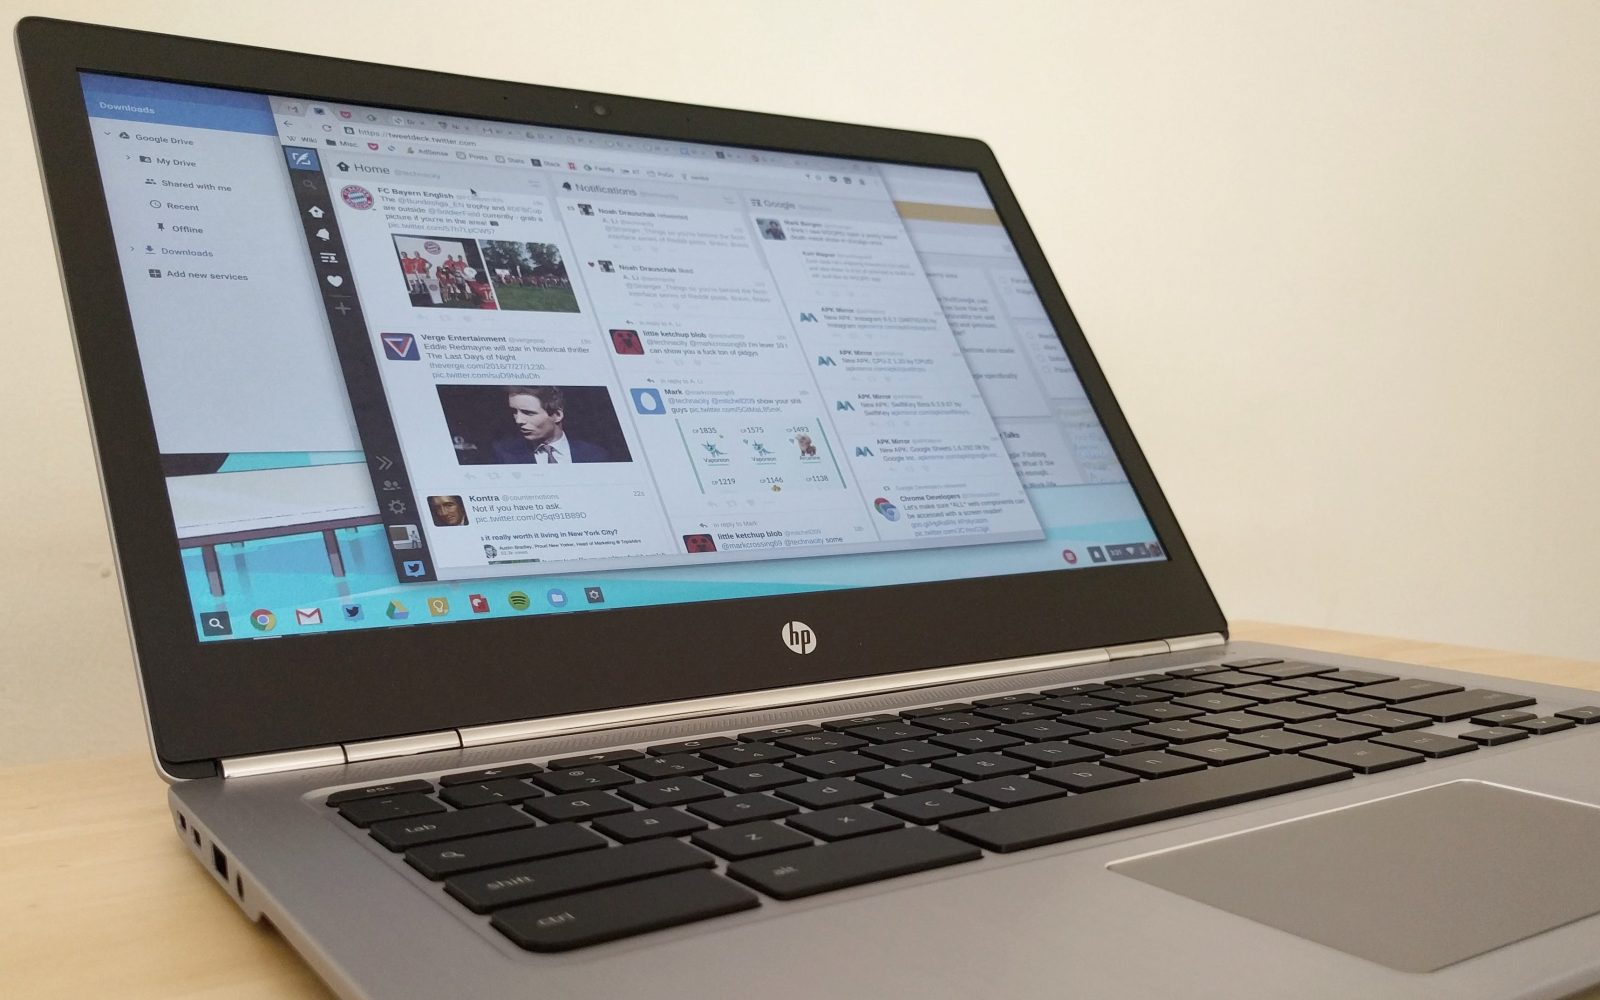 Review: HP Chromebook 13 is a Pixel-like Chrome OS laptop without the premium price